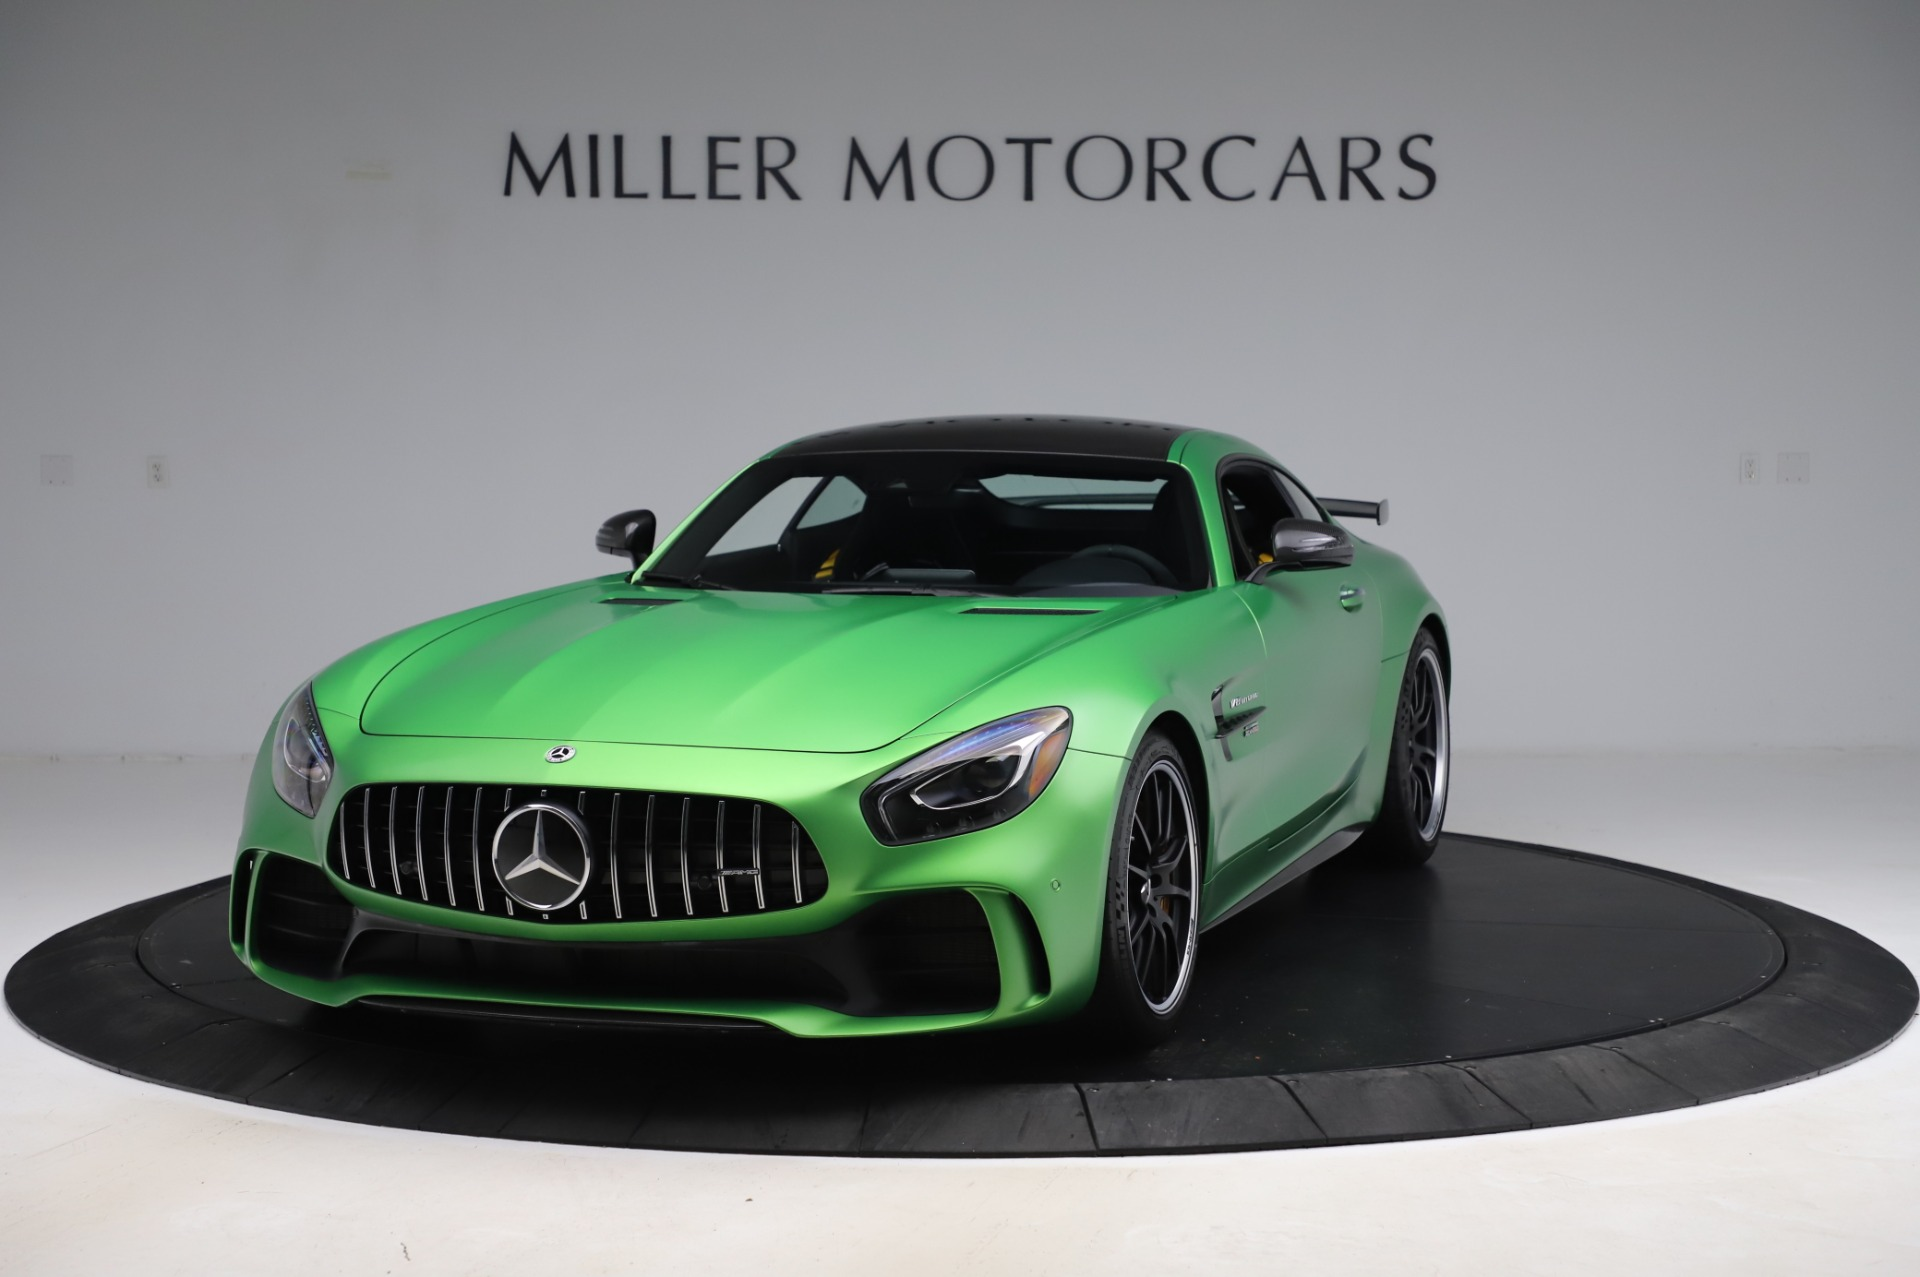 Used 2019 Mercedes-Benz AMG GT R for sale $155,900 at Rolls-Royce Motor Cars Greenwich in Greenwich CT 06830 1